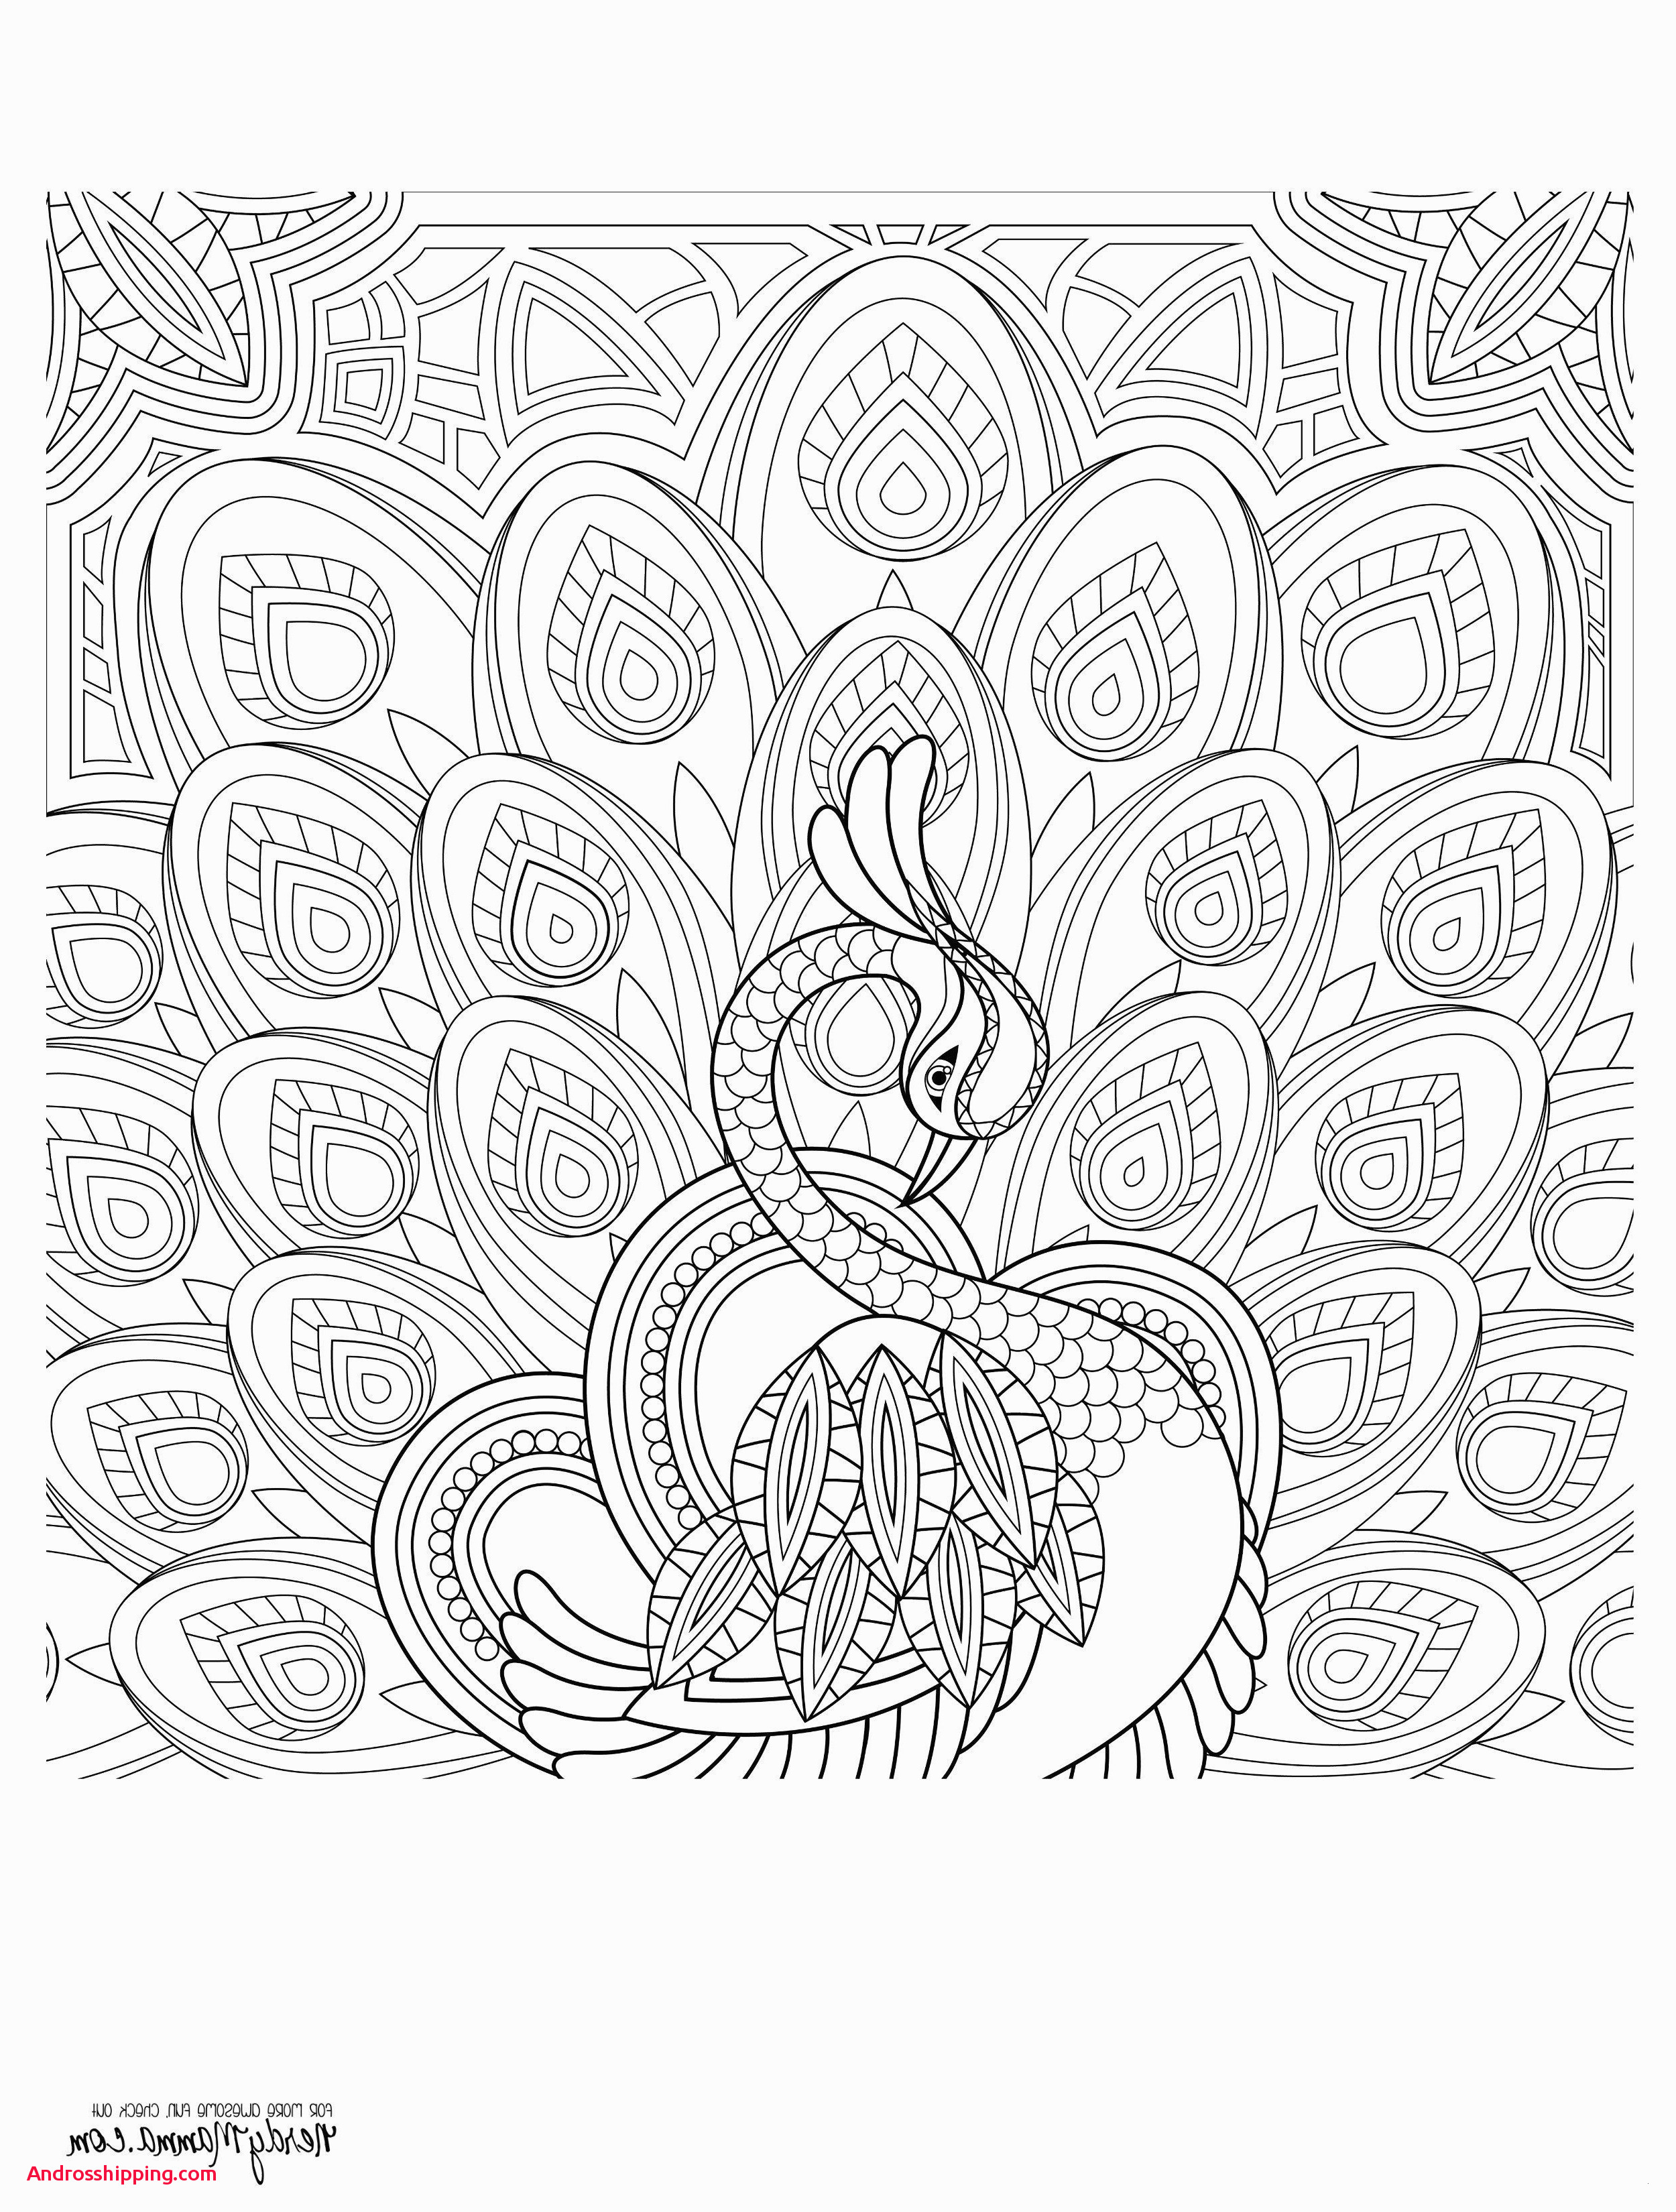 free number coloring pages Download-Color by Number Coloring Pages Free Brilliant New Colouring Family C3 82 C2 A0 0d Free 6-f